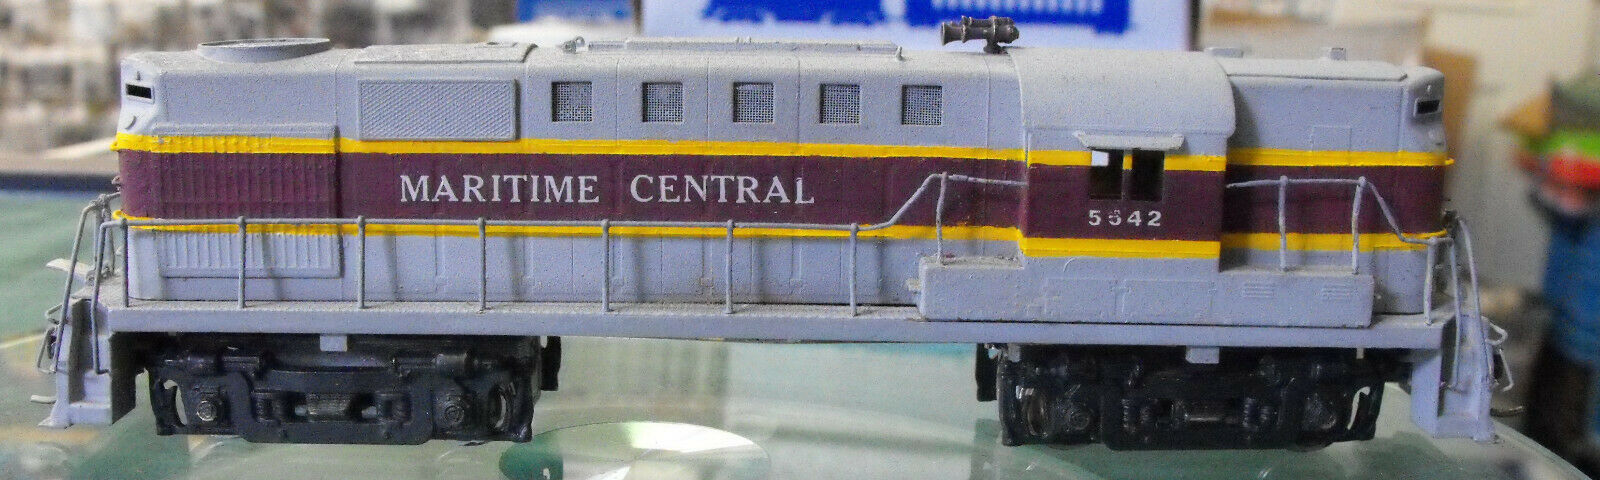 HO Scale Meritime Central Painted BRASS Locomotive